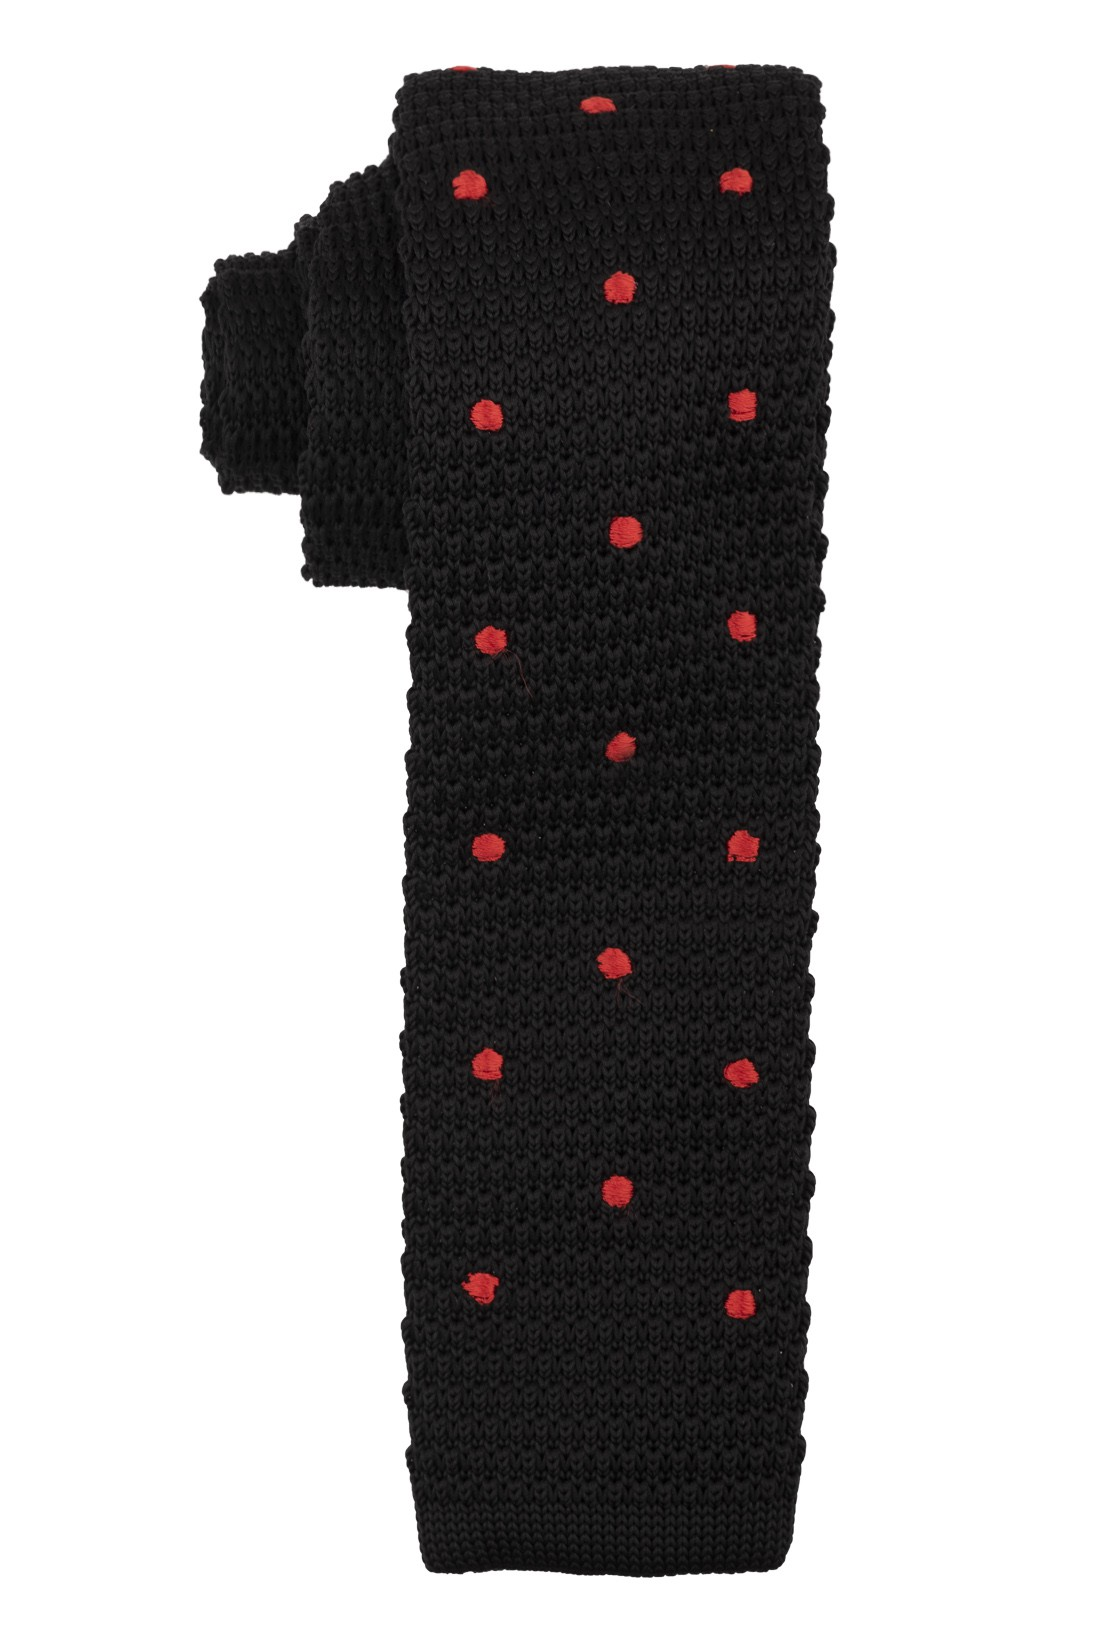 Sport Dots - Black Knitted Necktie by The Tie Hub